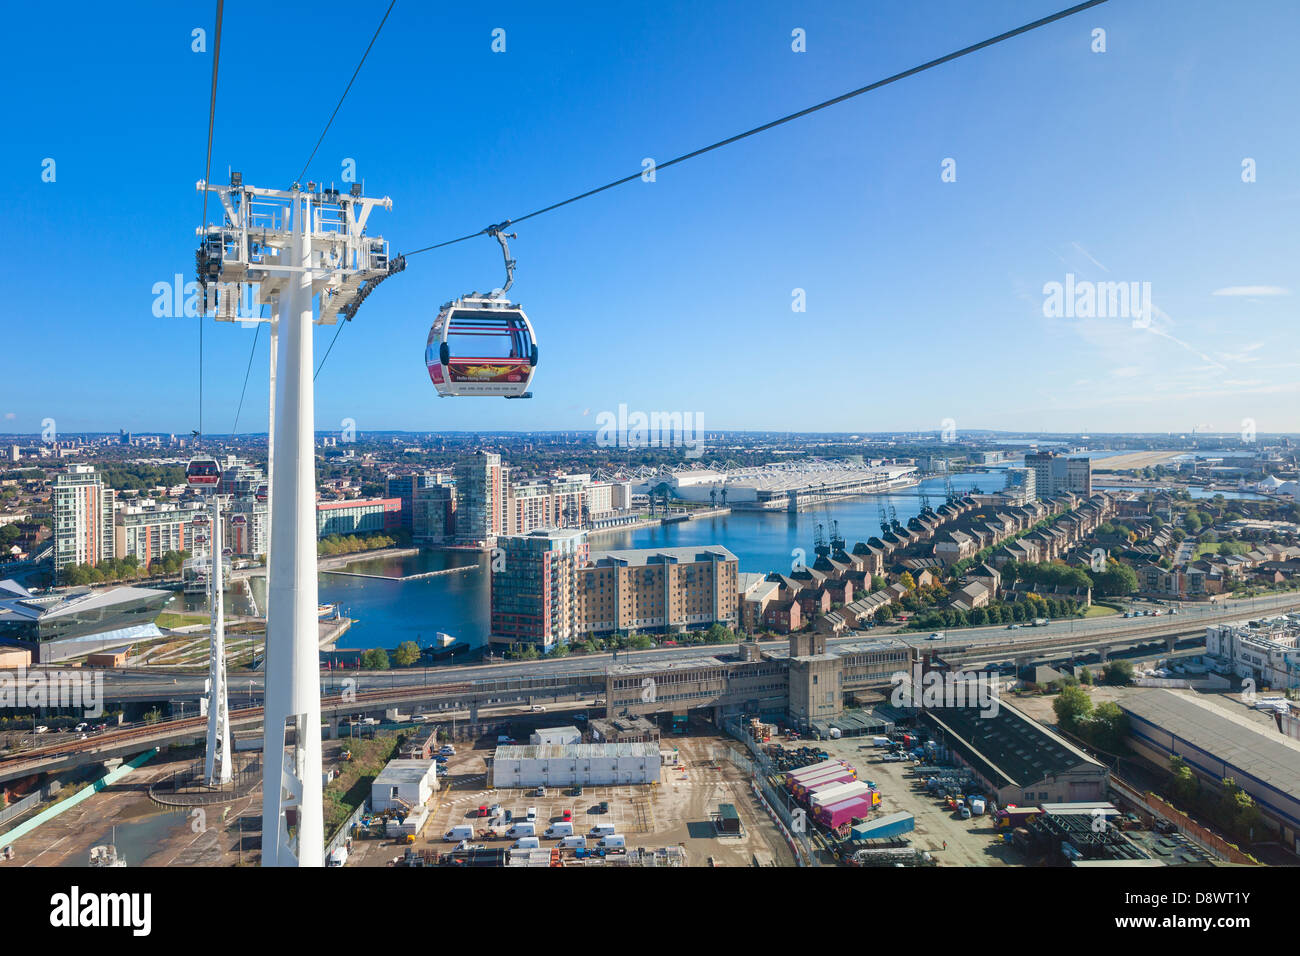 Aerial view from the Emirates Air Line cable car, London, England - Stock Image